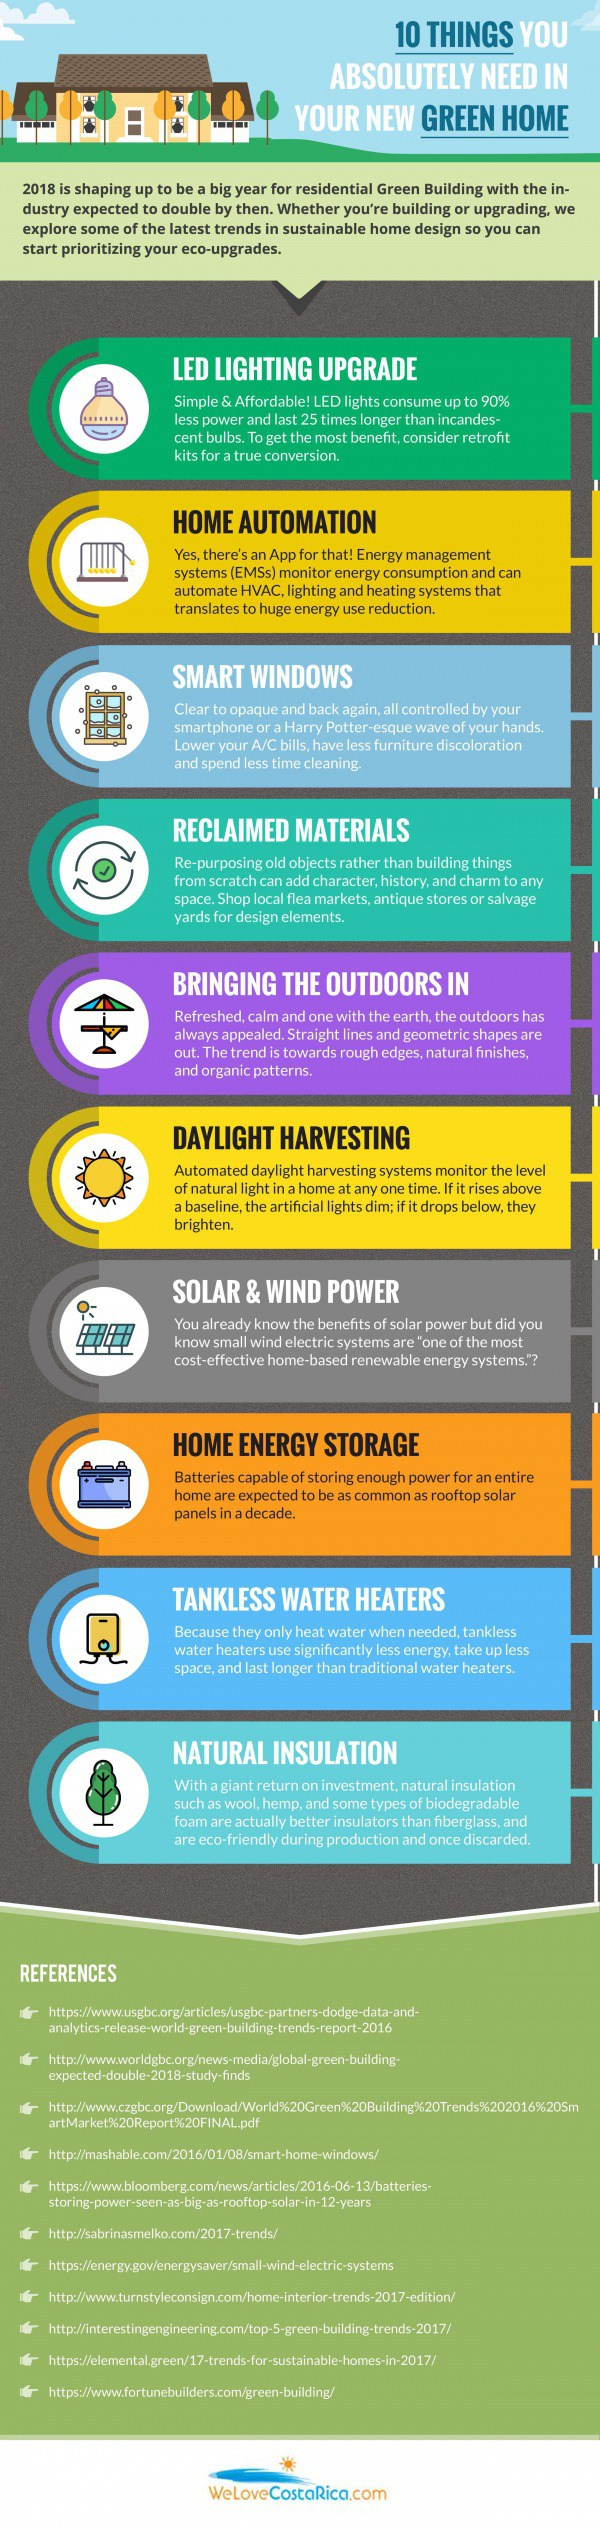 10 Things You Need in your New Green Home Infographic